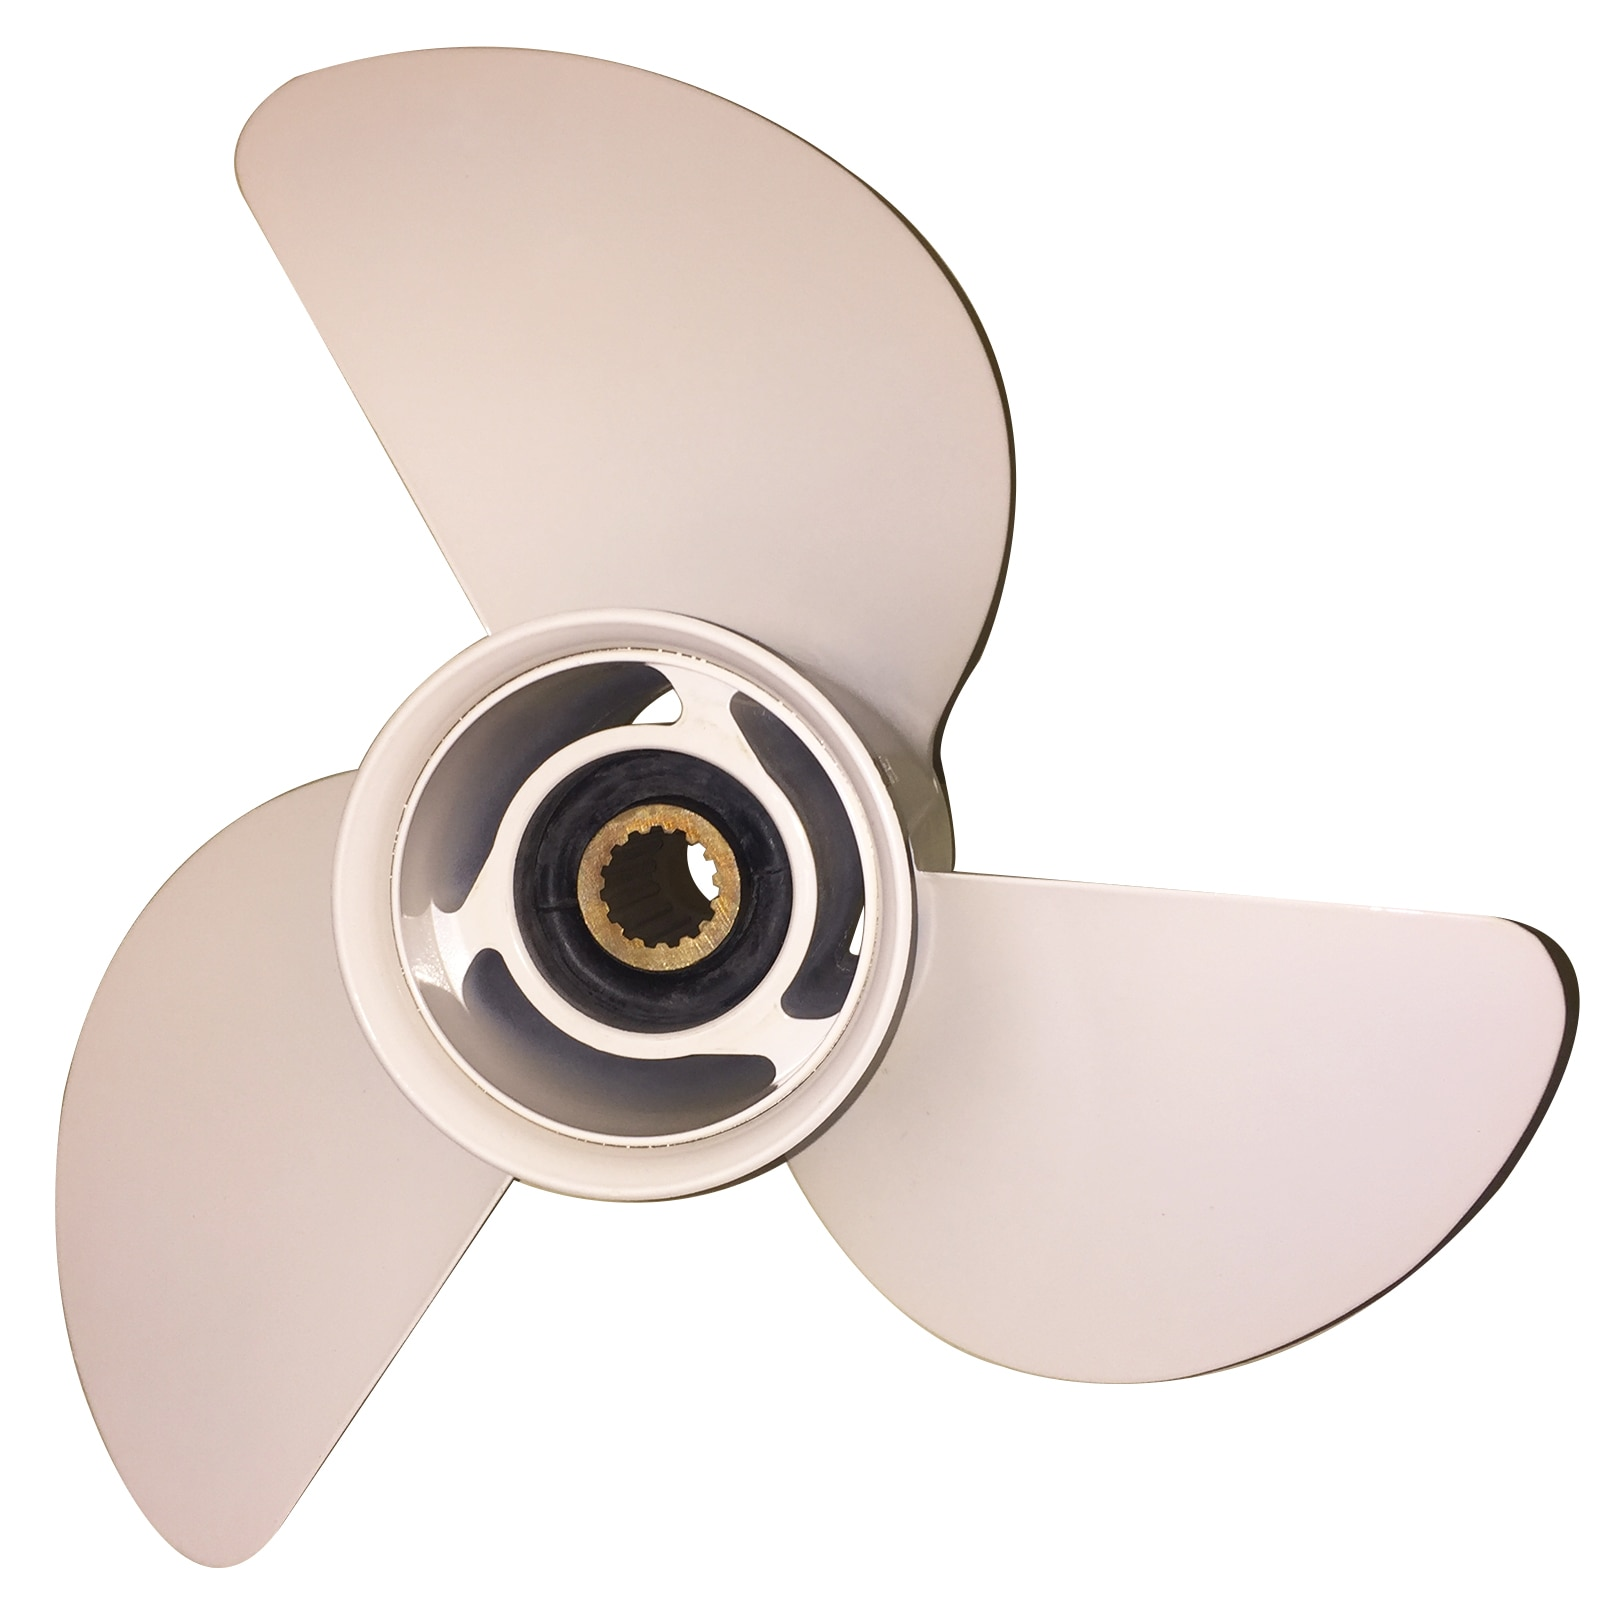 Boat Propeller 13 3/4x21 for Yamaha 150HP-400HP 3 Blades Aluminum Prop 15 Tooth RH OEM NO: 6G5-45943-01-98 13.75x21 enlarge